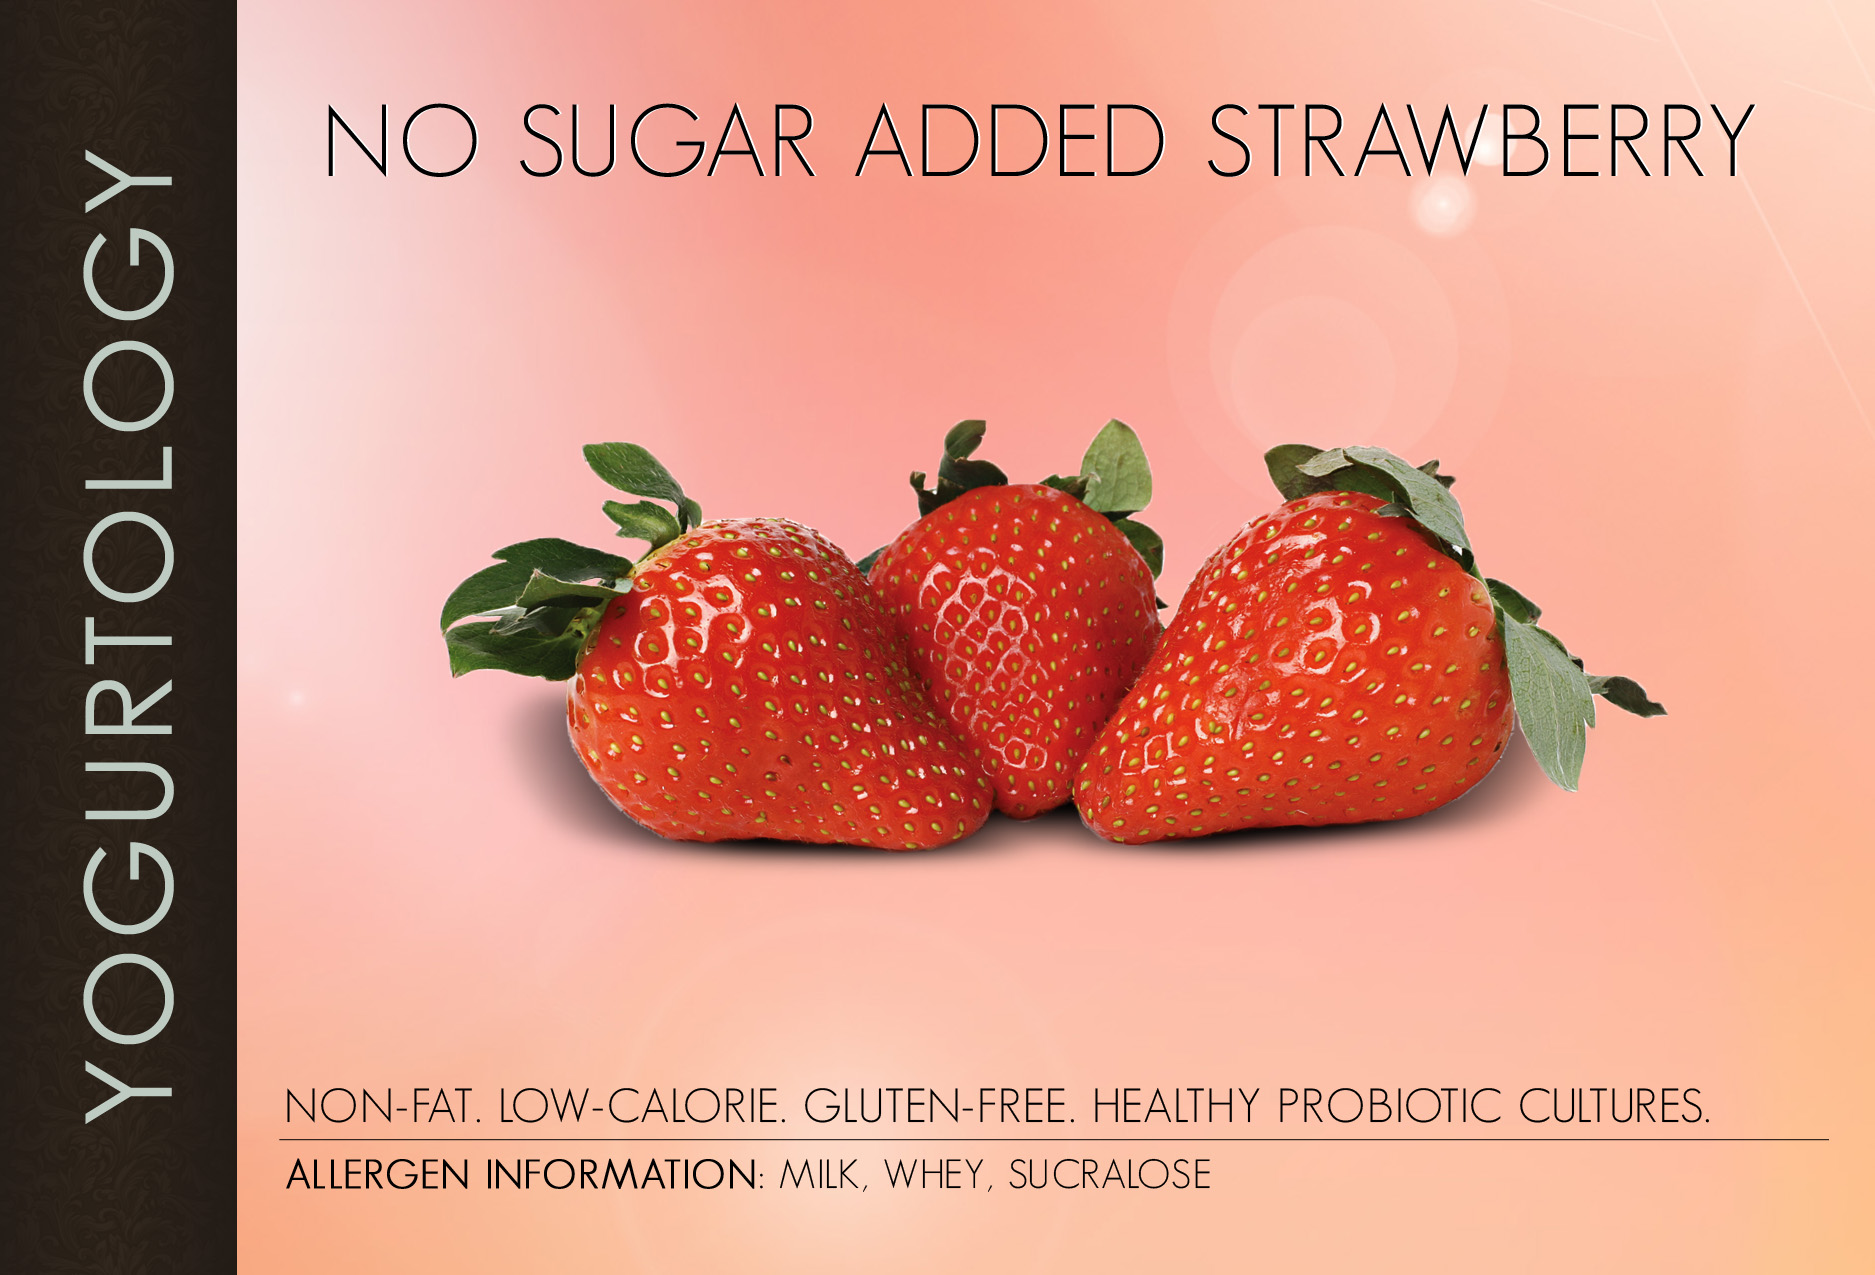 NSA Strawberry